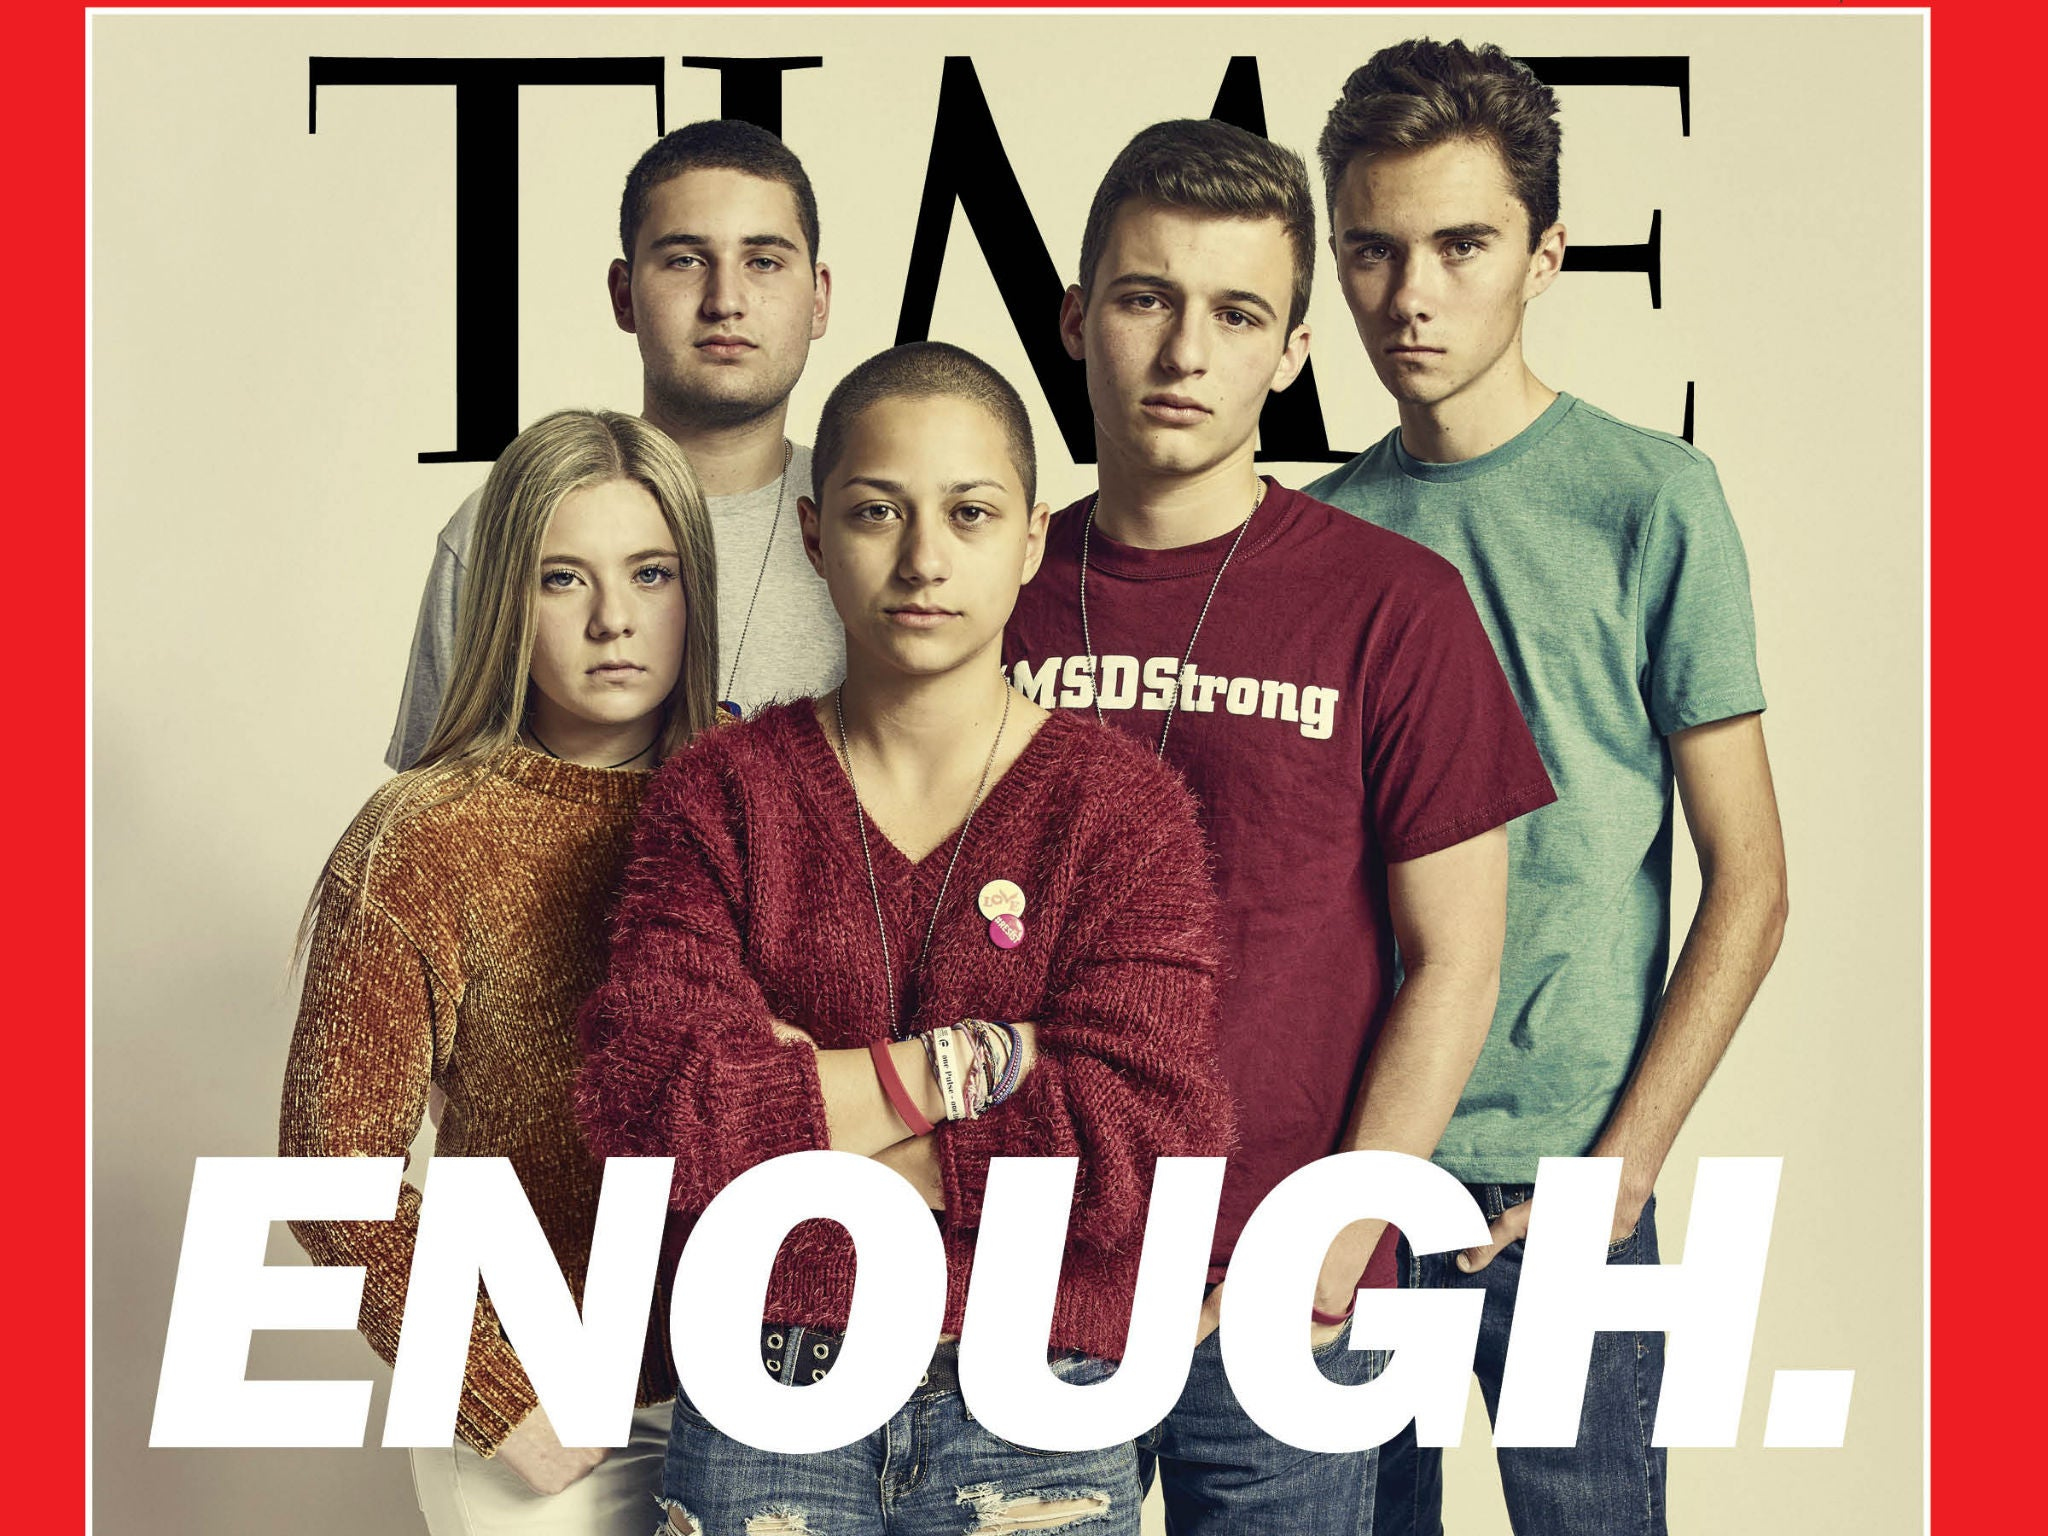 Florida school shooting survivors on cover of time: 'Enough'